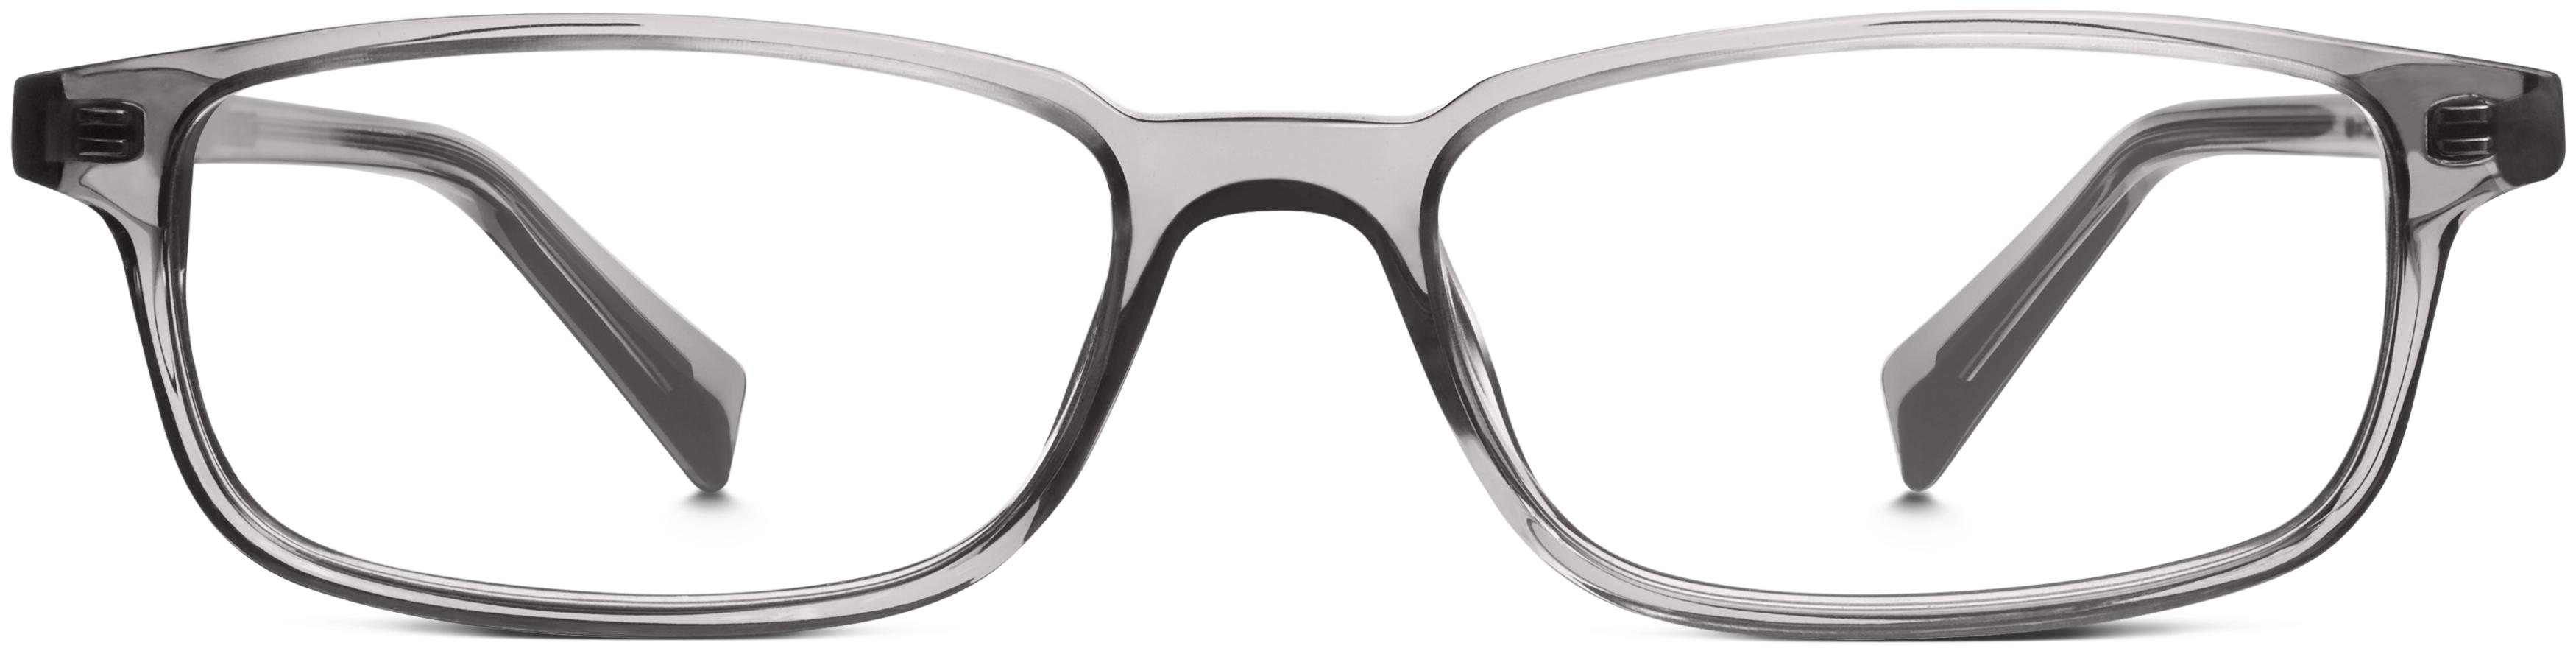 6f8b718cac0 Men s Eyeglasses